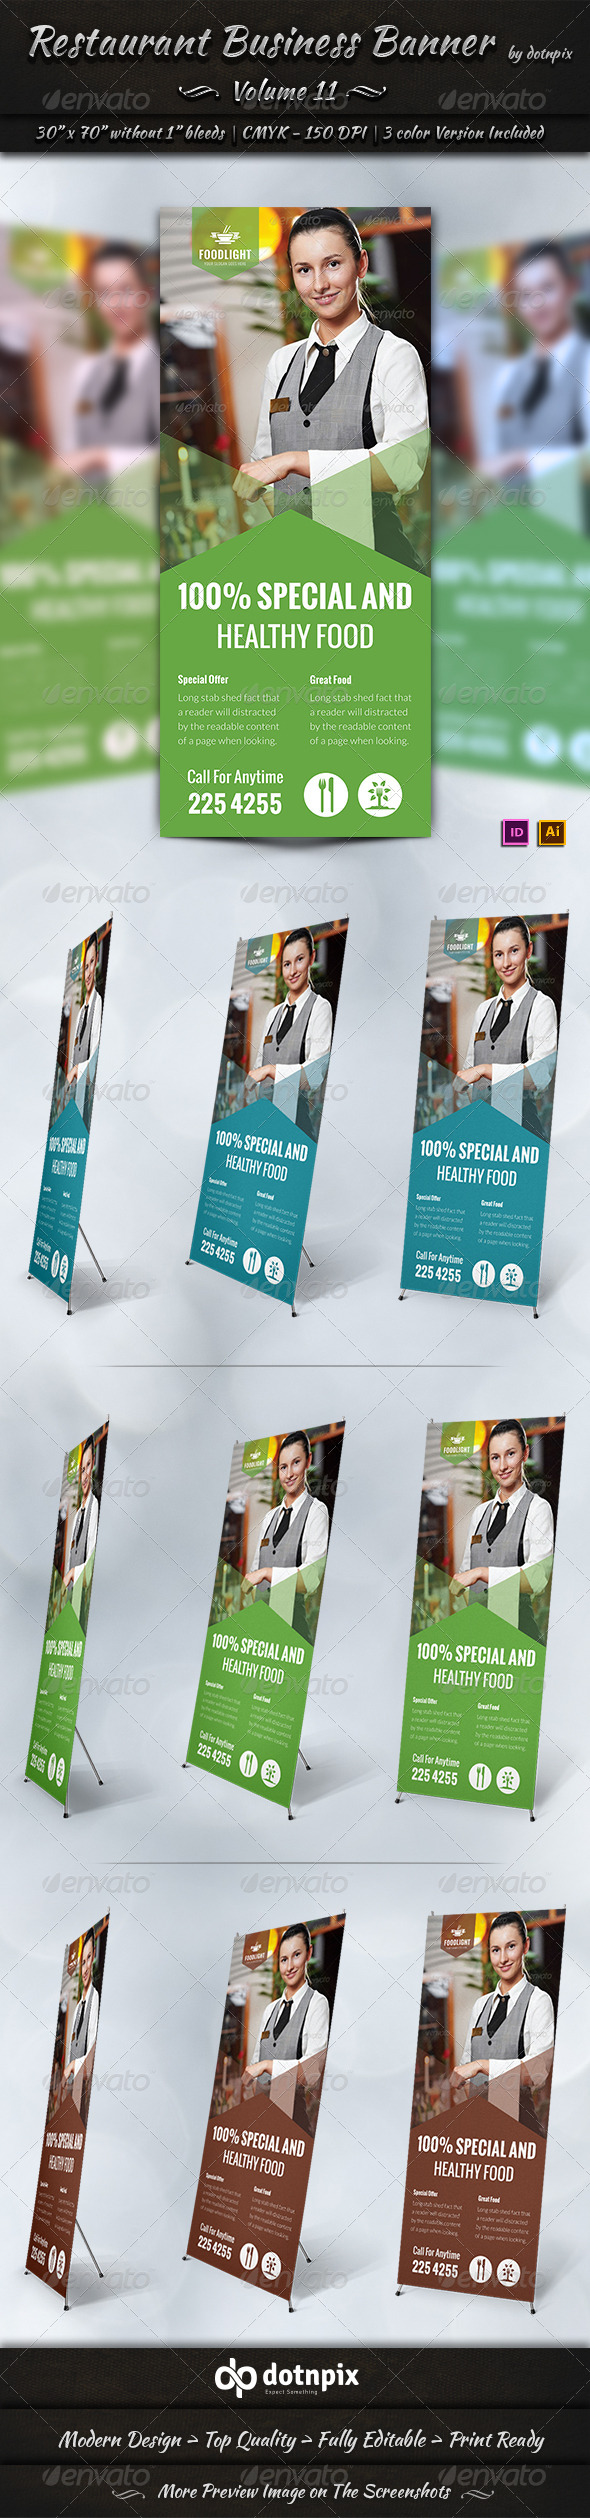 GraphicRiver Restaurant Business Banner Volume 11 7865178